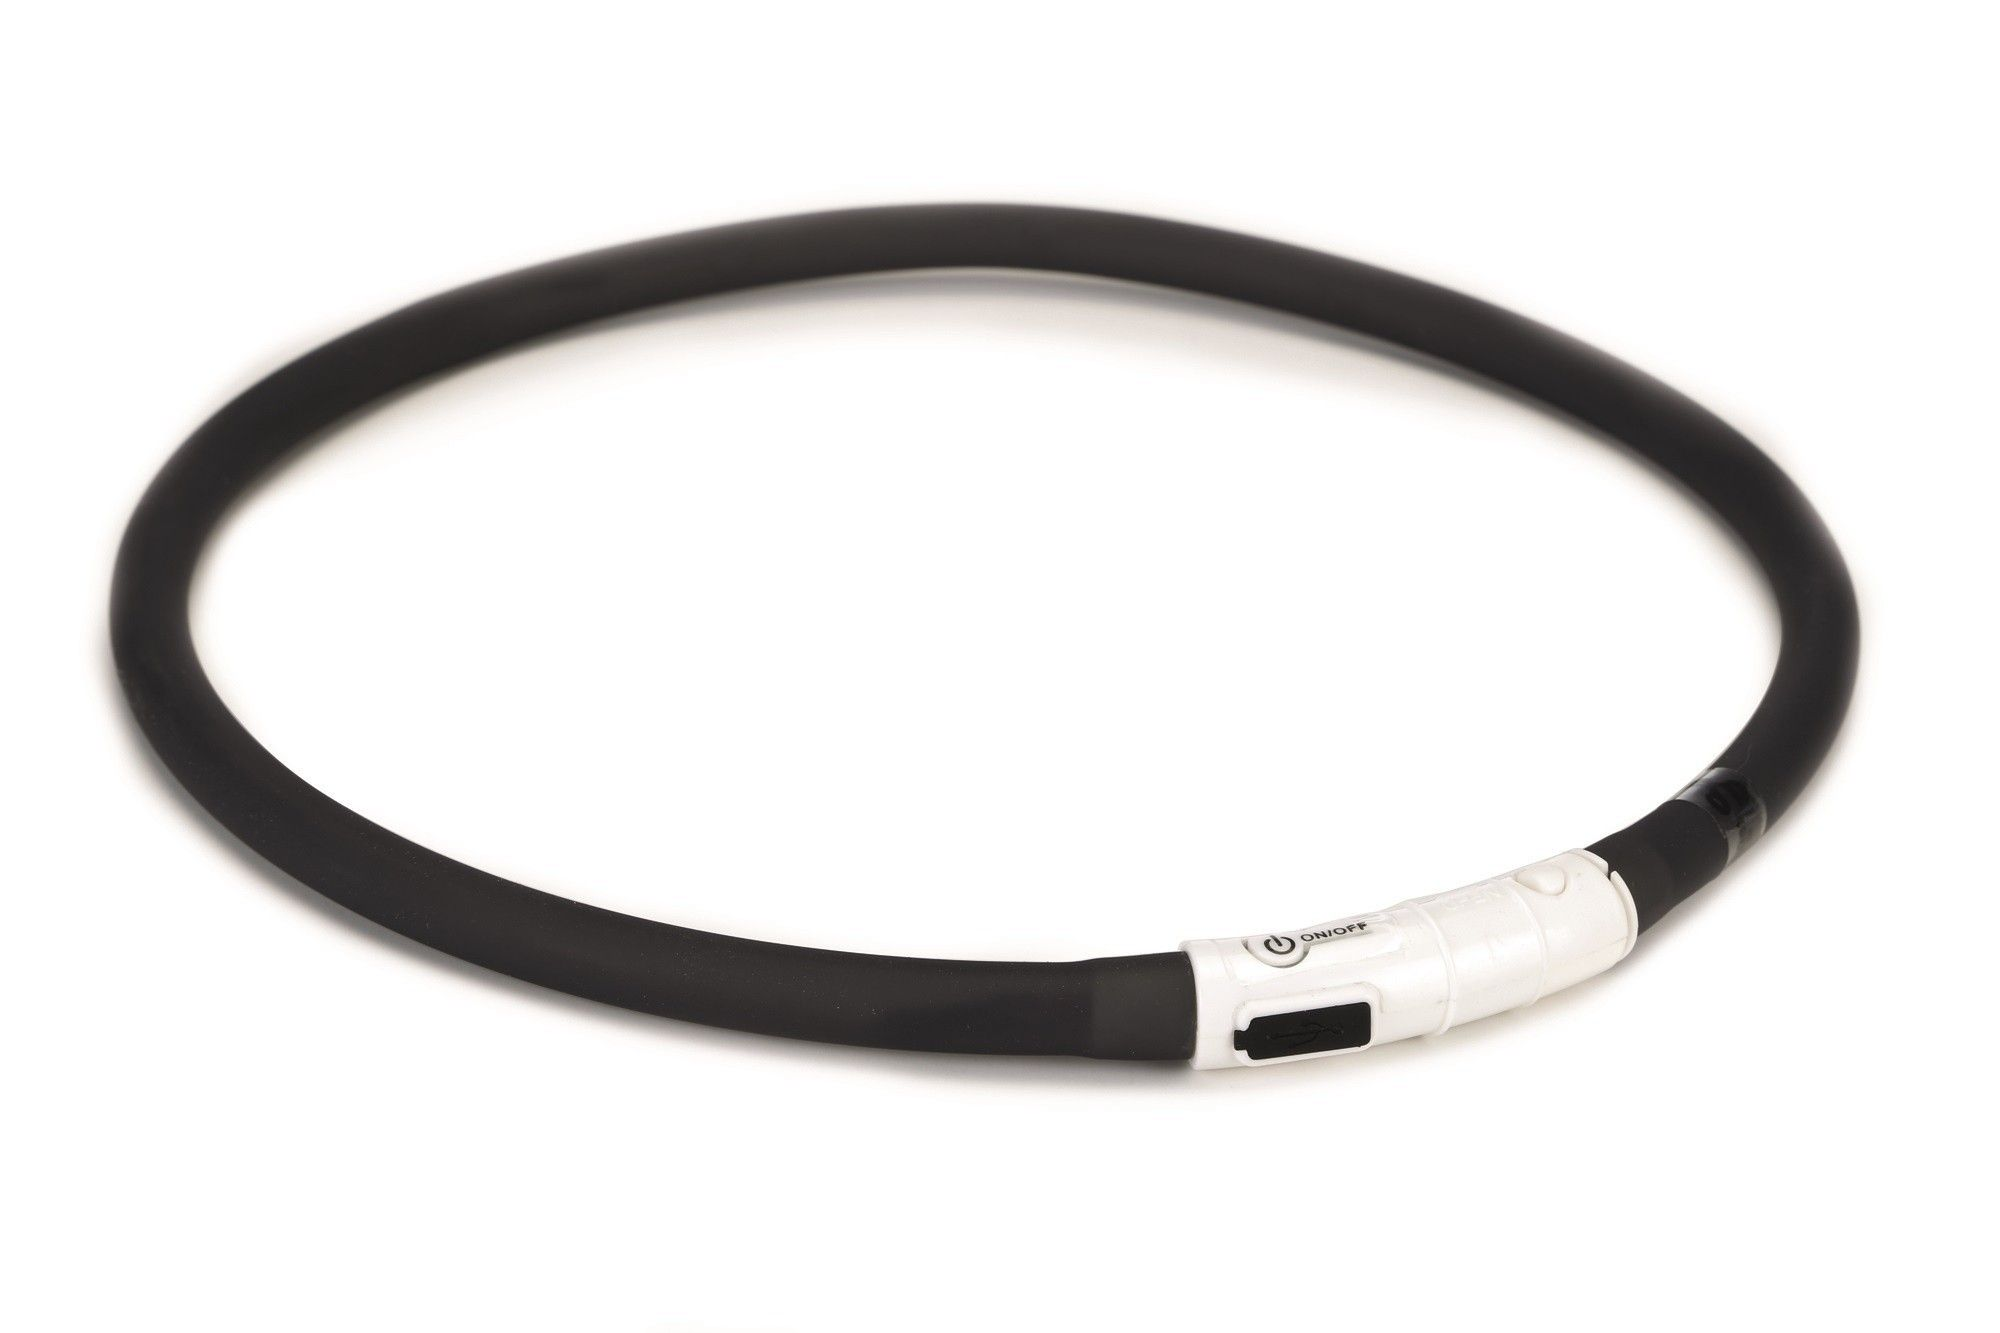 Hondenhalsband Dogini safety collar met USB aansluiting